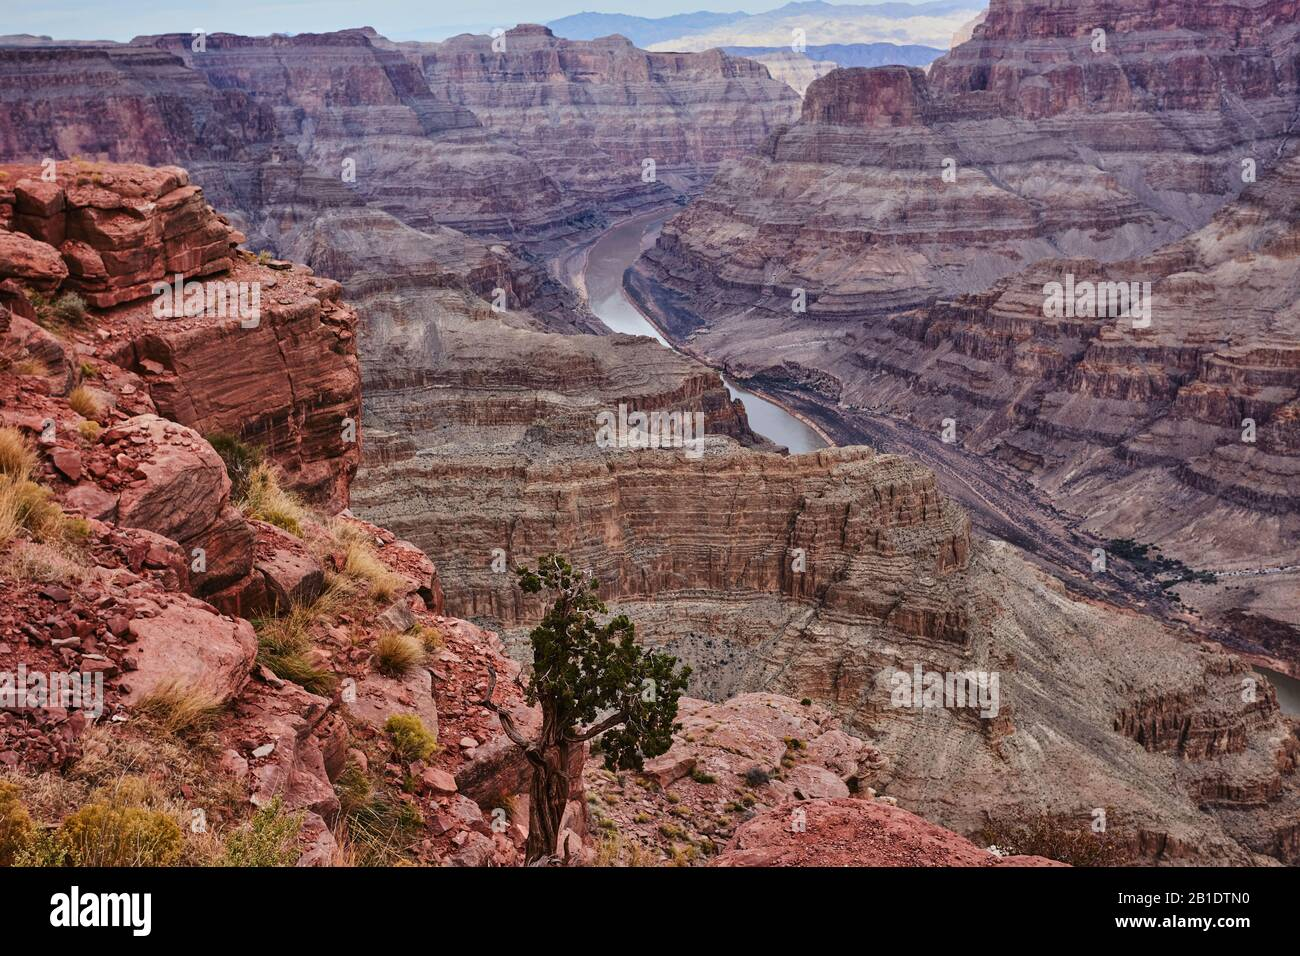 Grand Canyon, USA, West Rim with the Colorado River down below Stock Photo